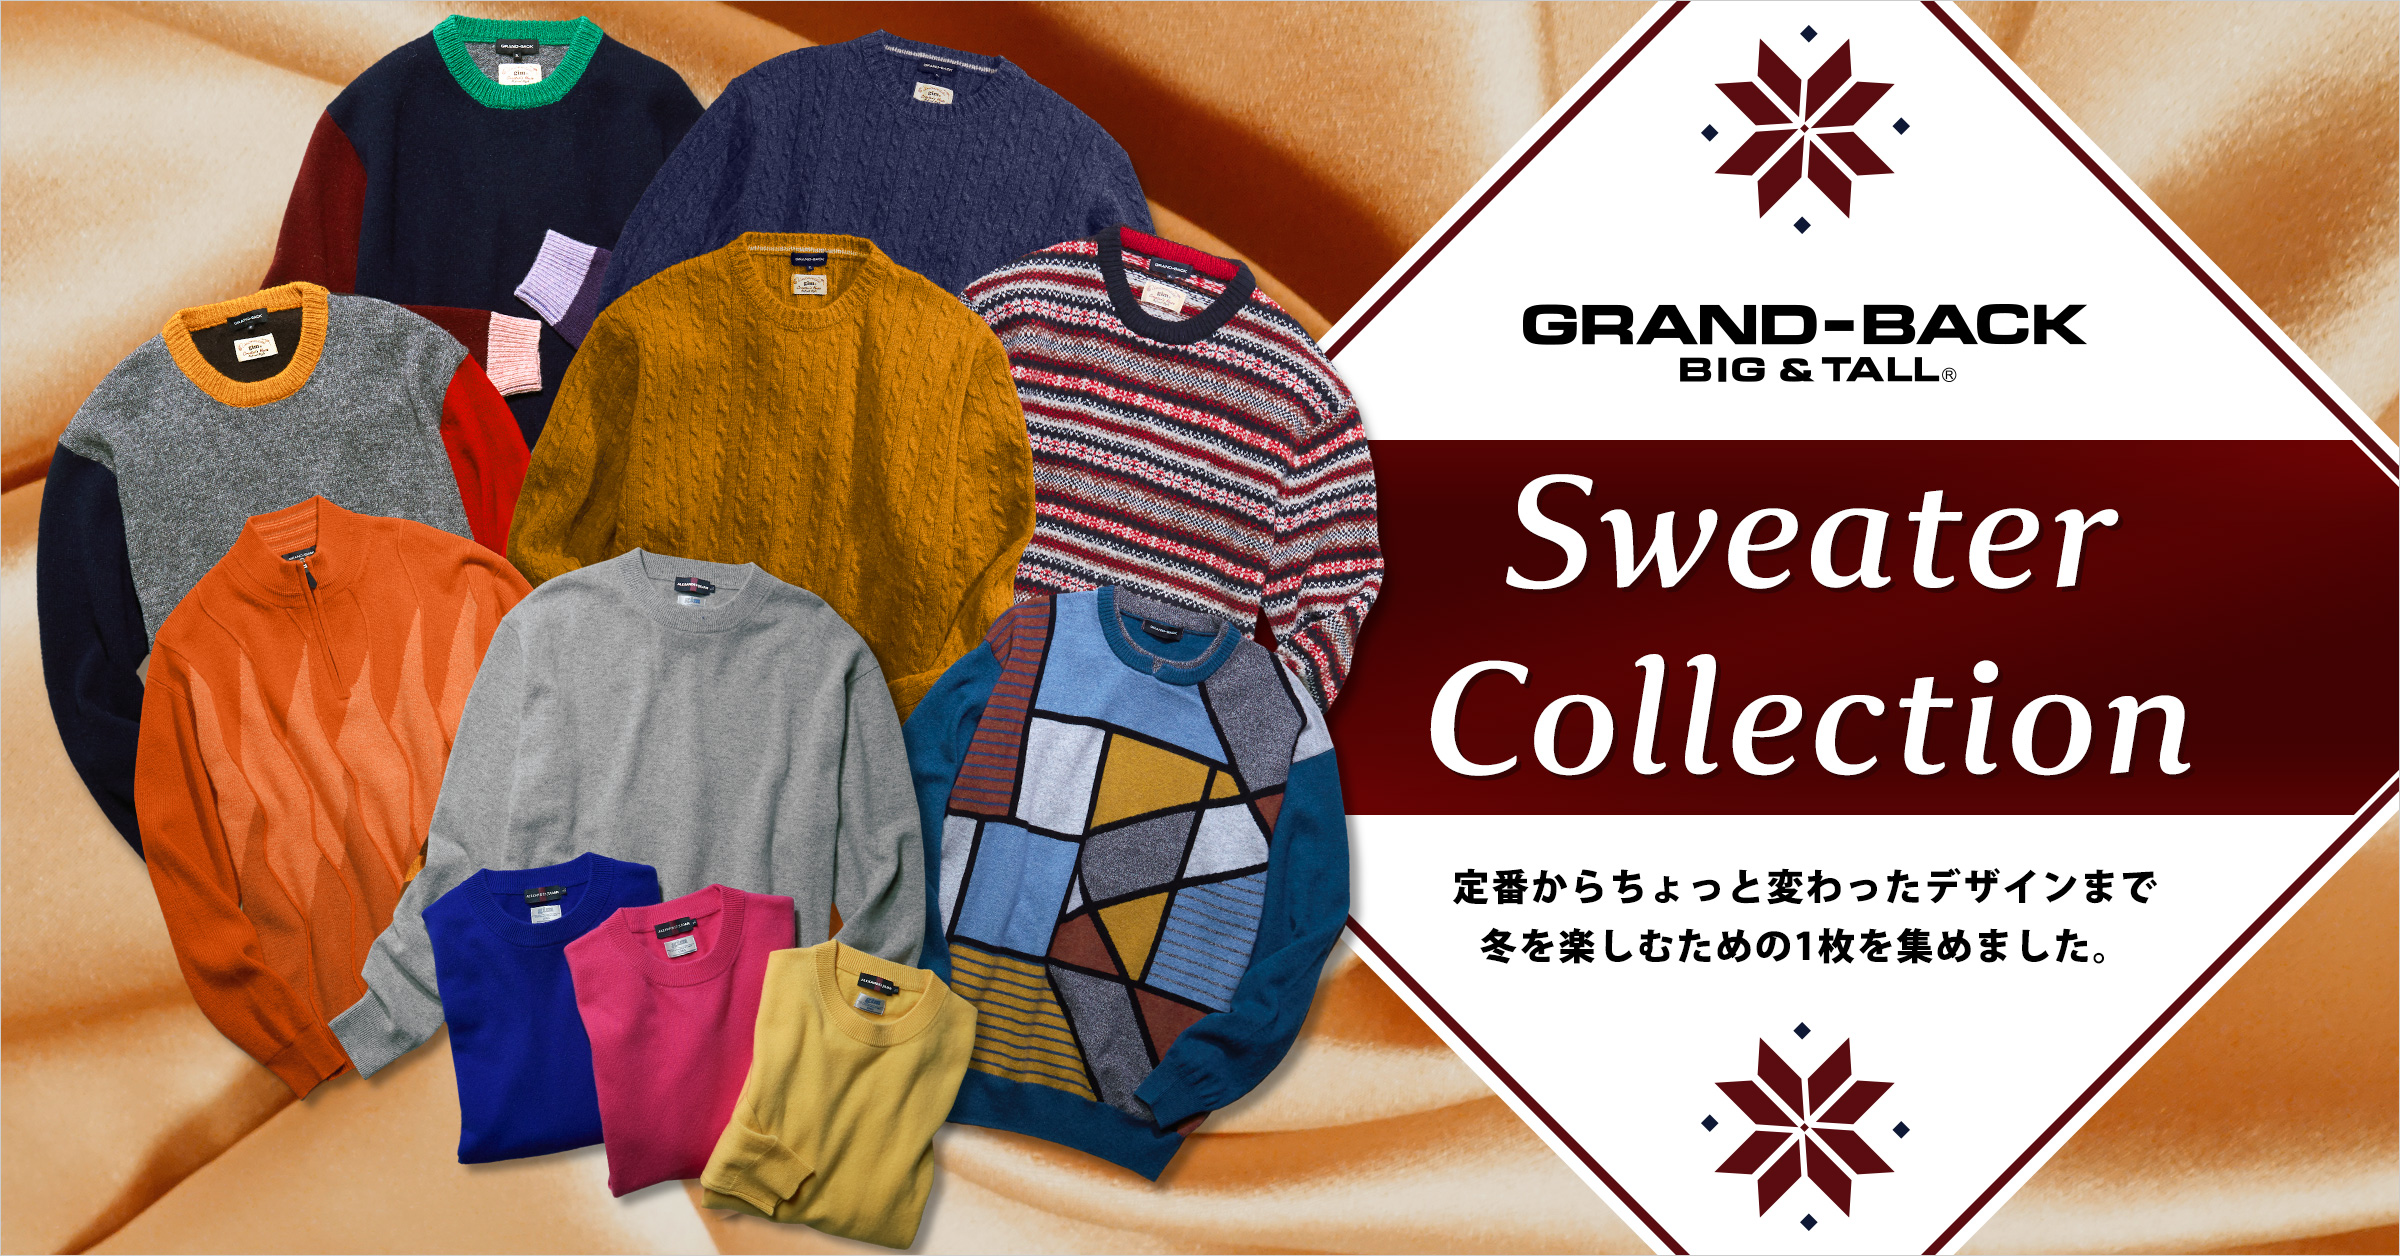 GRAND-BACK Sweater Collection